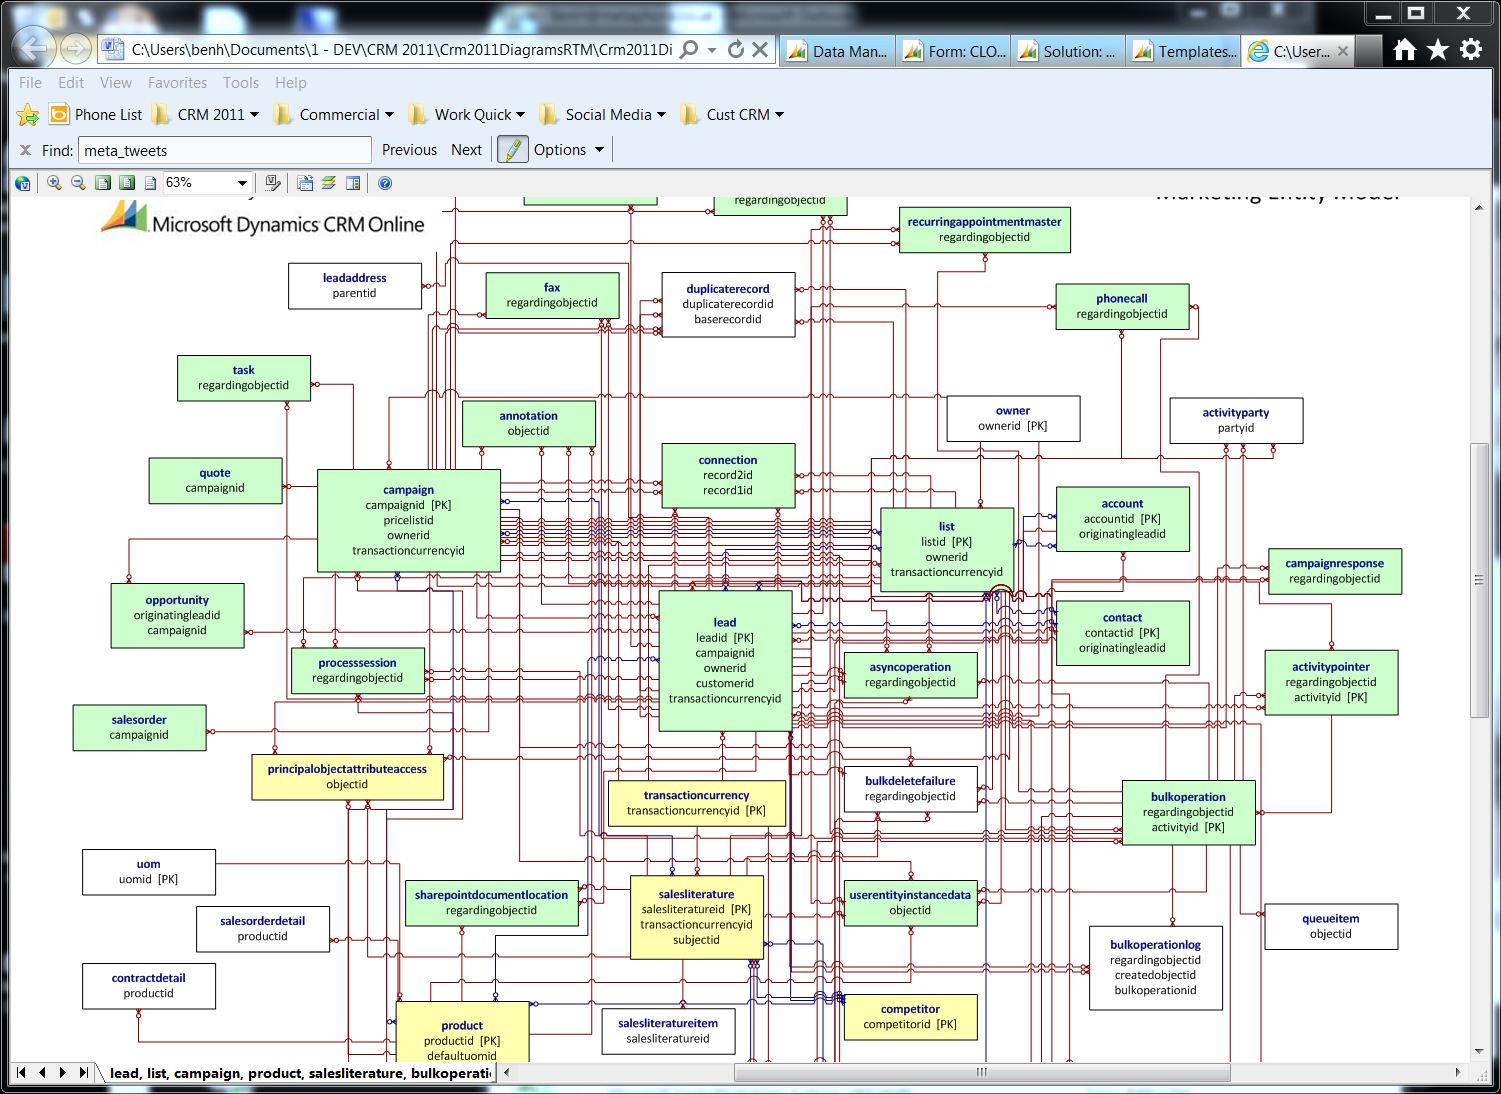 Microsoft Dynamics CRM 2011 Entity Relationship Diagrams